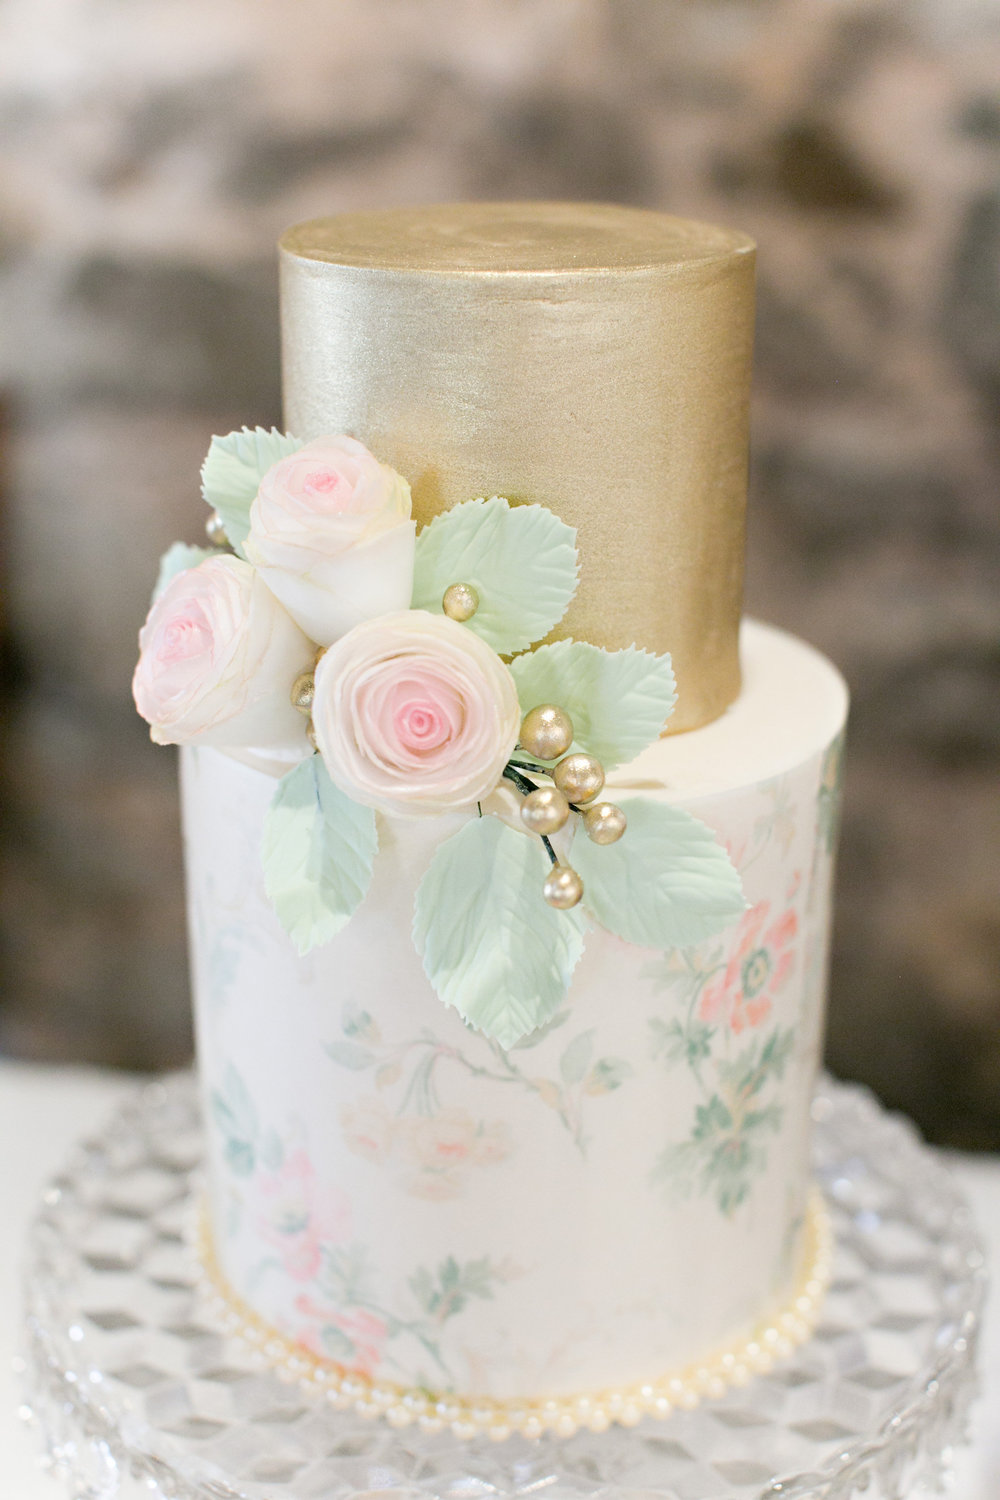 13 Wafer Paper Wedding Cakes Photo Wedding Cake With Wafer Paper